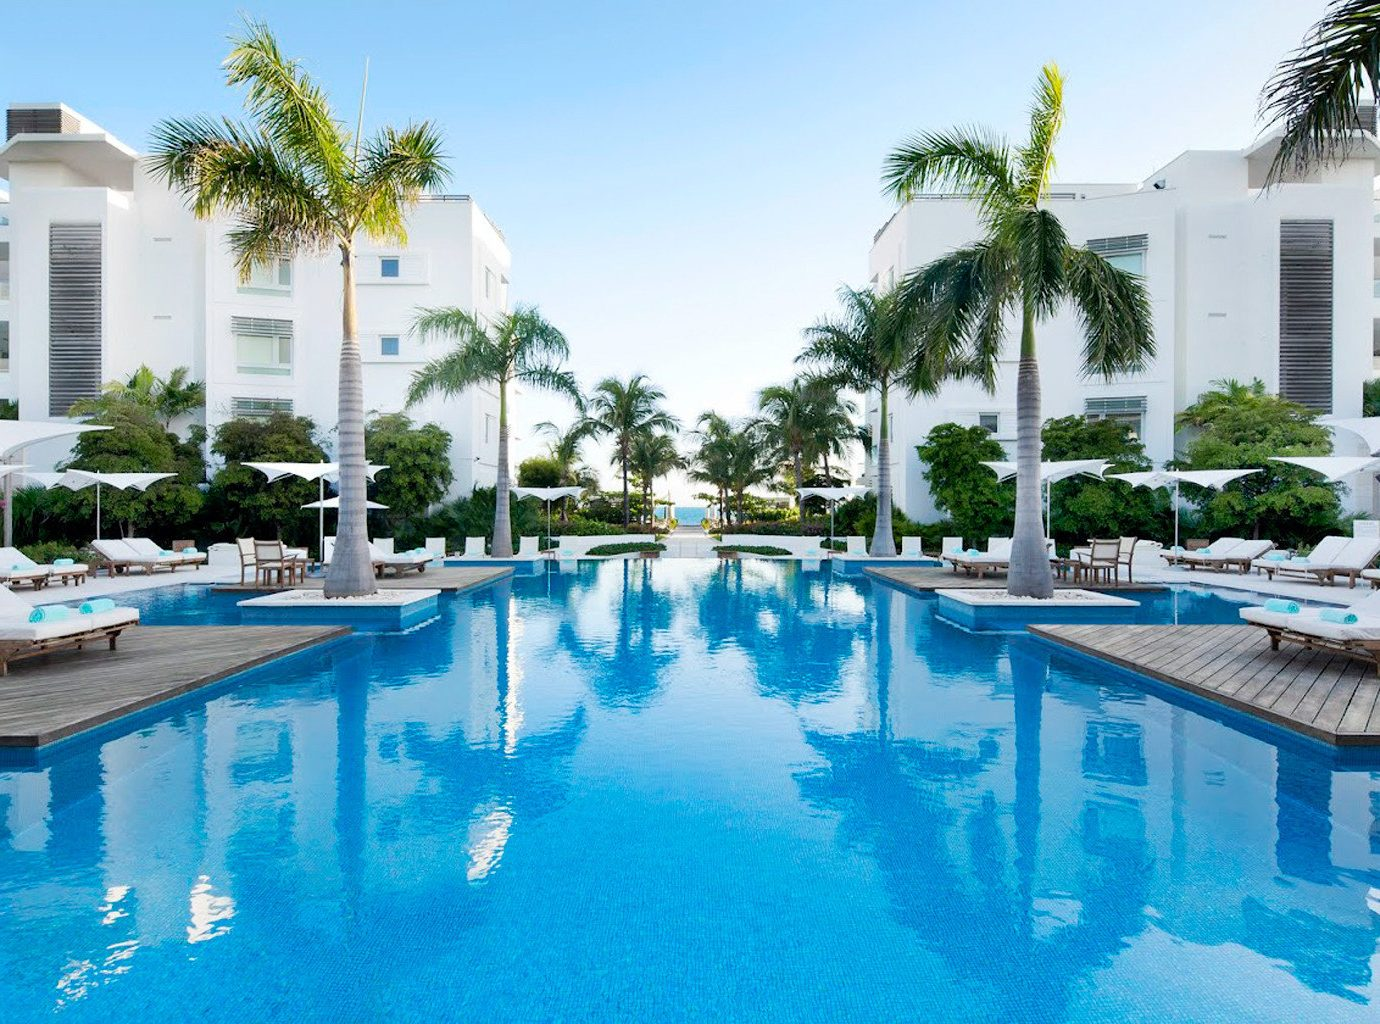 Hotels Trip Ideas outdoor sky tree Pool swimming pool Resort property leisure condominium estate vacation reflecting pool resort town Villa real estate backyard blue swimming several